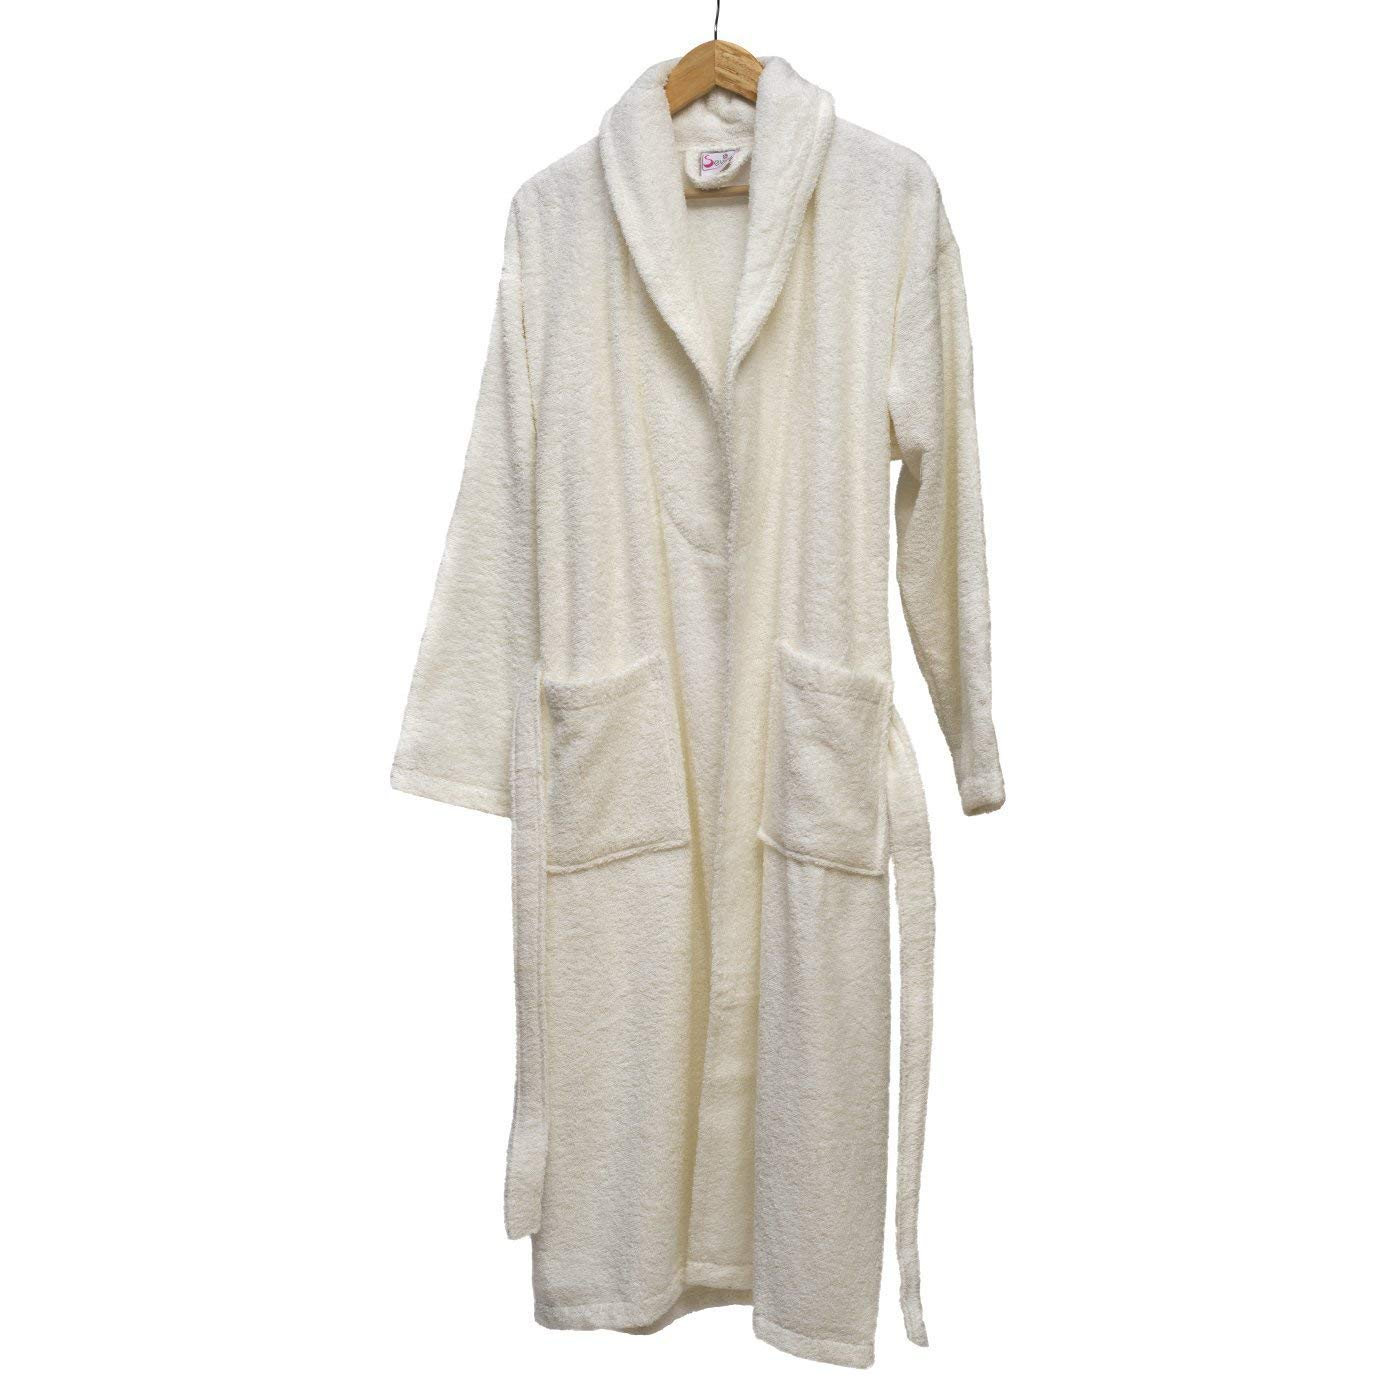 57aa4e32ec Get Quotations · Cozy Line Hgh Quality 100% Turkish Cotton Extra Plush  Bathrobe Set